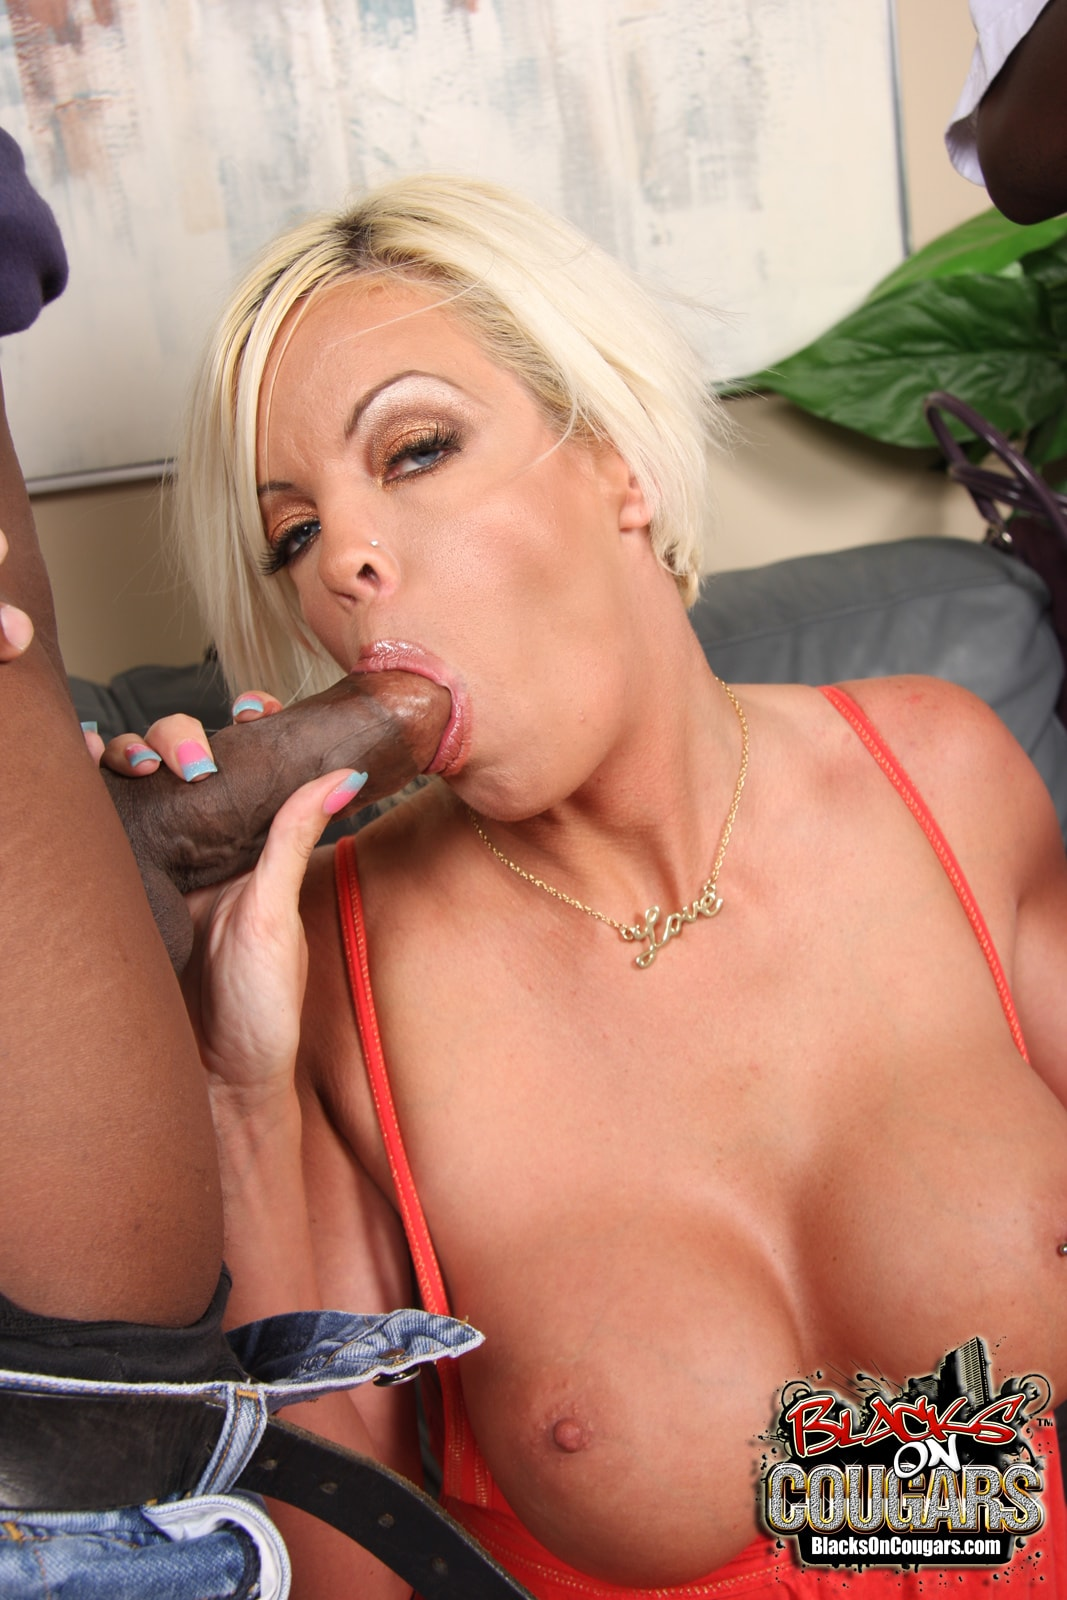 Dogfart '- Blacks On Cougars' starring Jordan Blue (Photo 16)